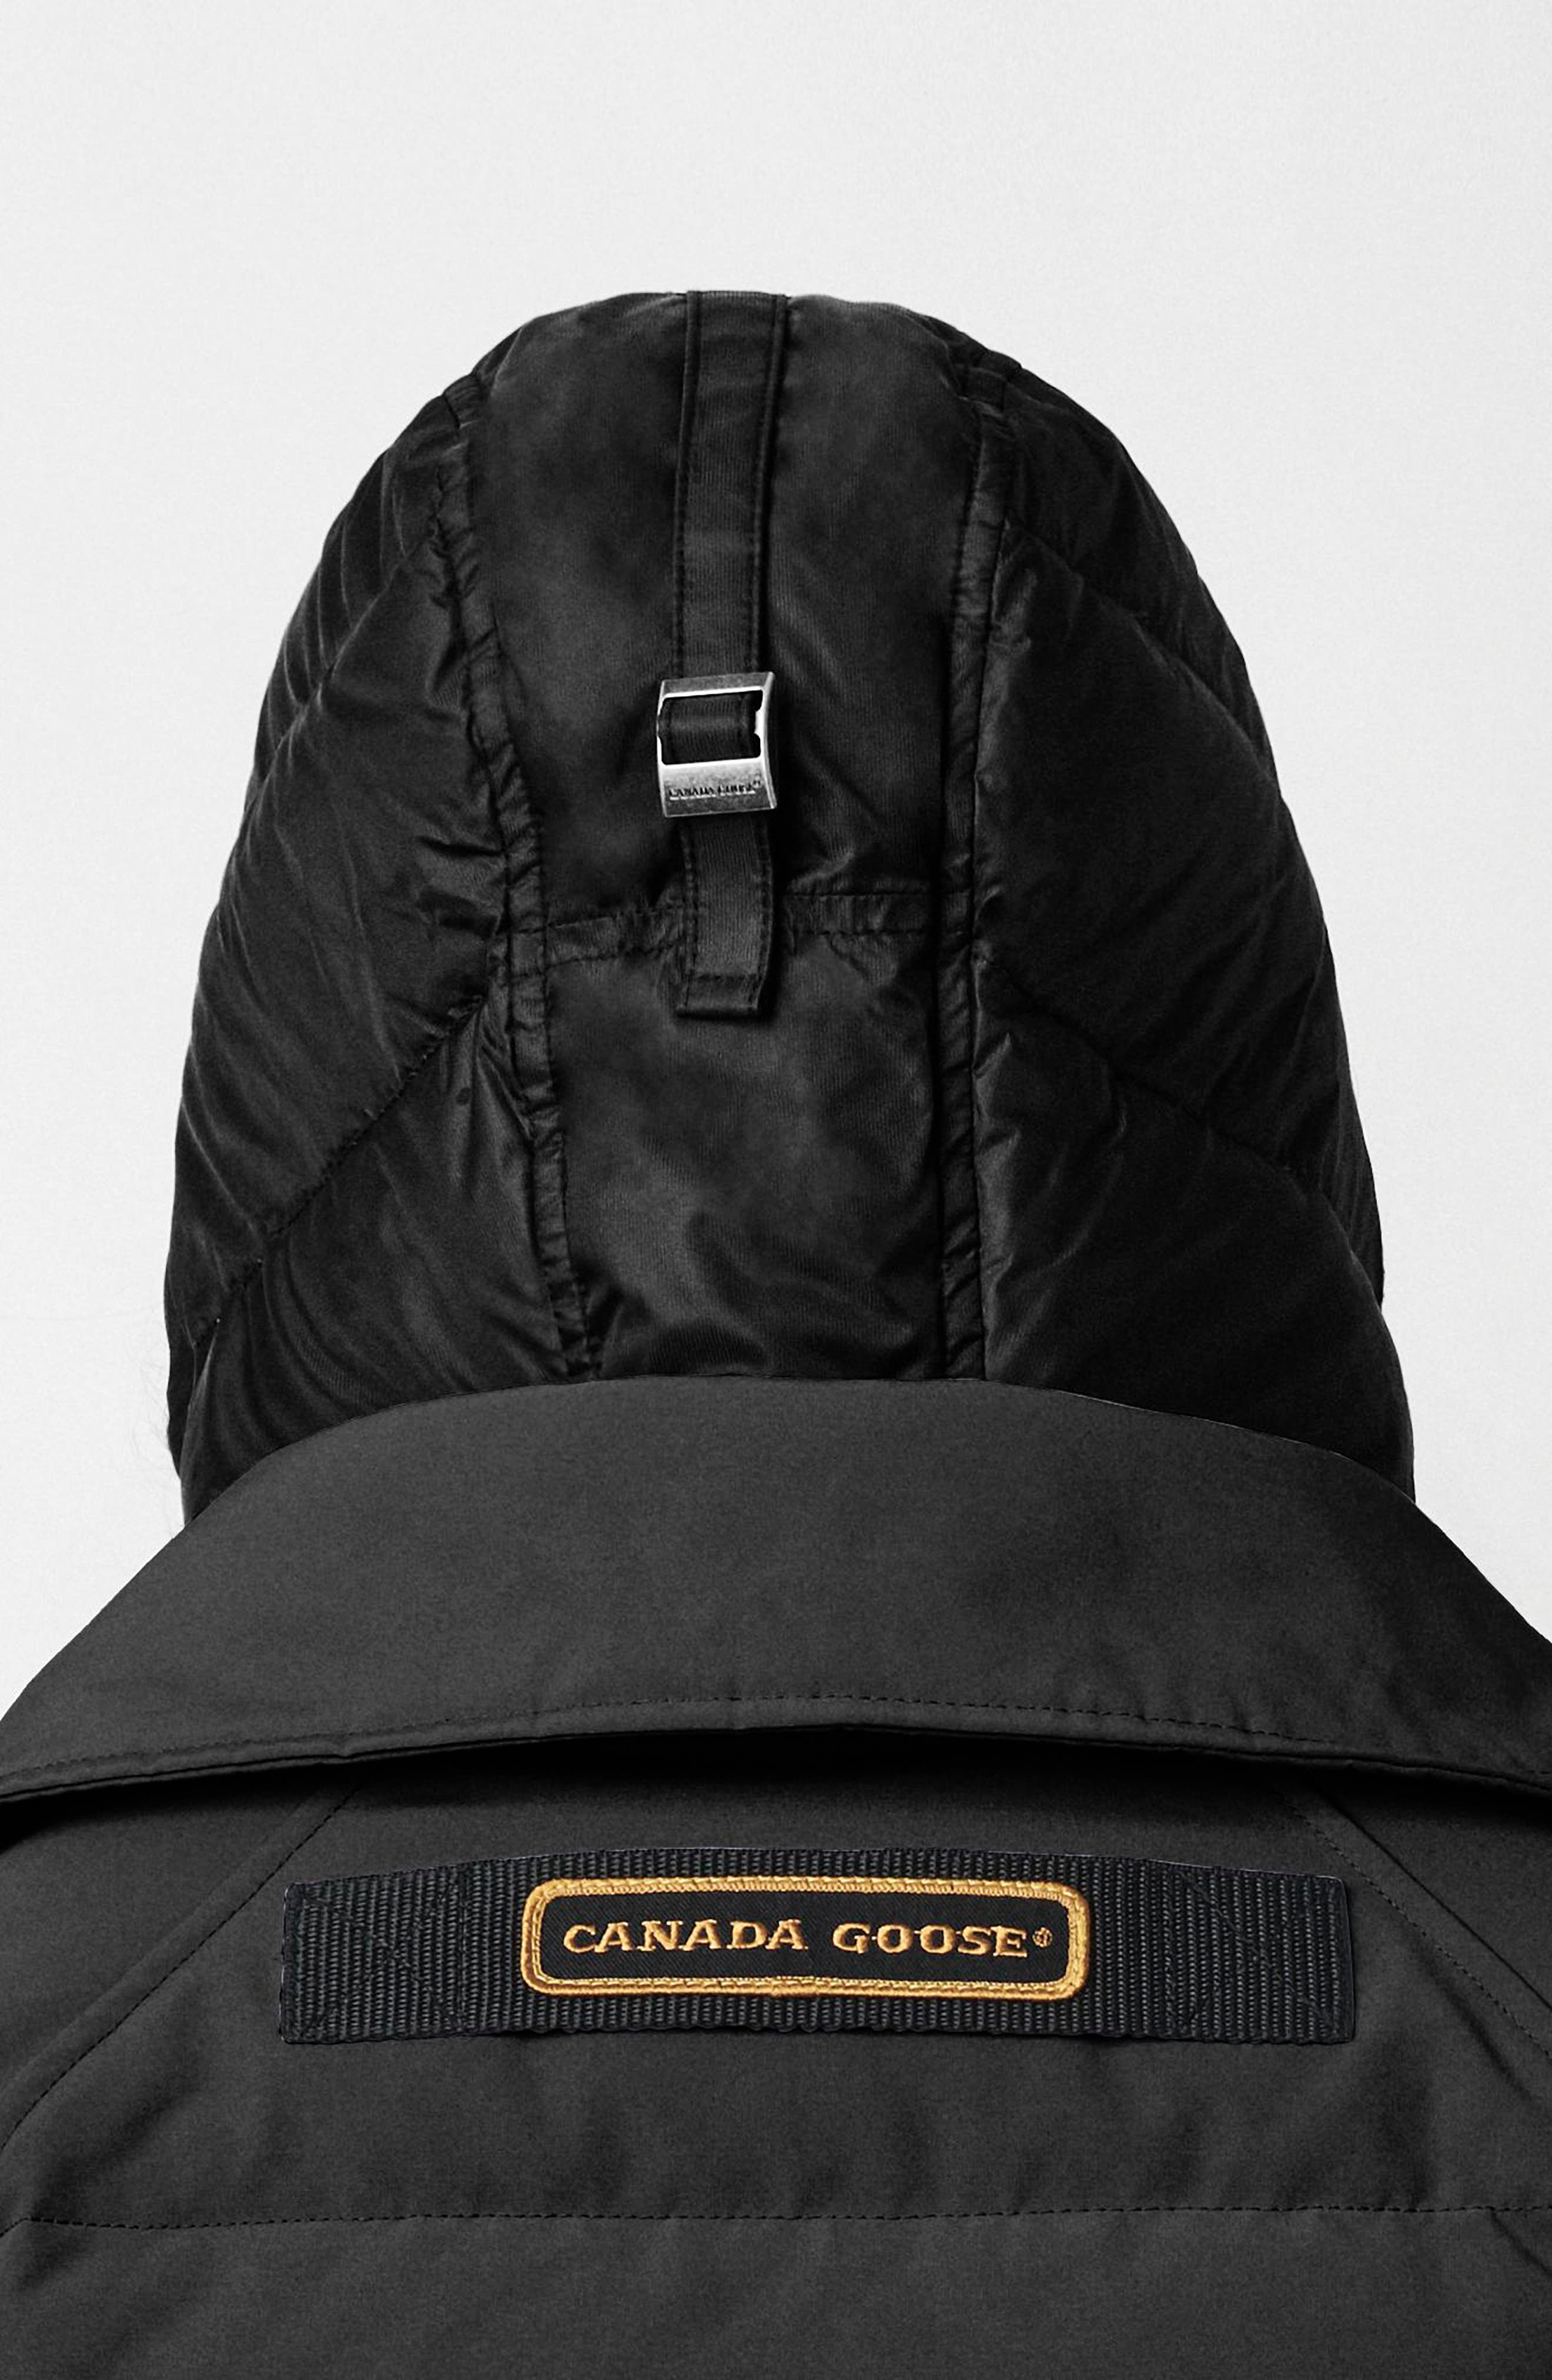 CANADA GOOSE, Deep Cove Arctic Tech Water Resistant 625 Fill Power Down Bomber Jacket, Alternate thumbnail 7, color, BLACK